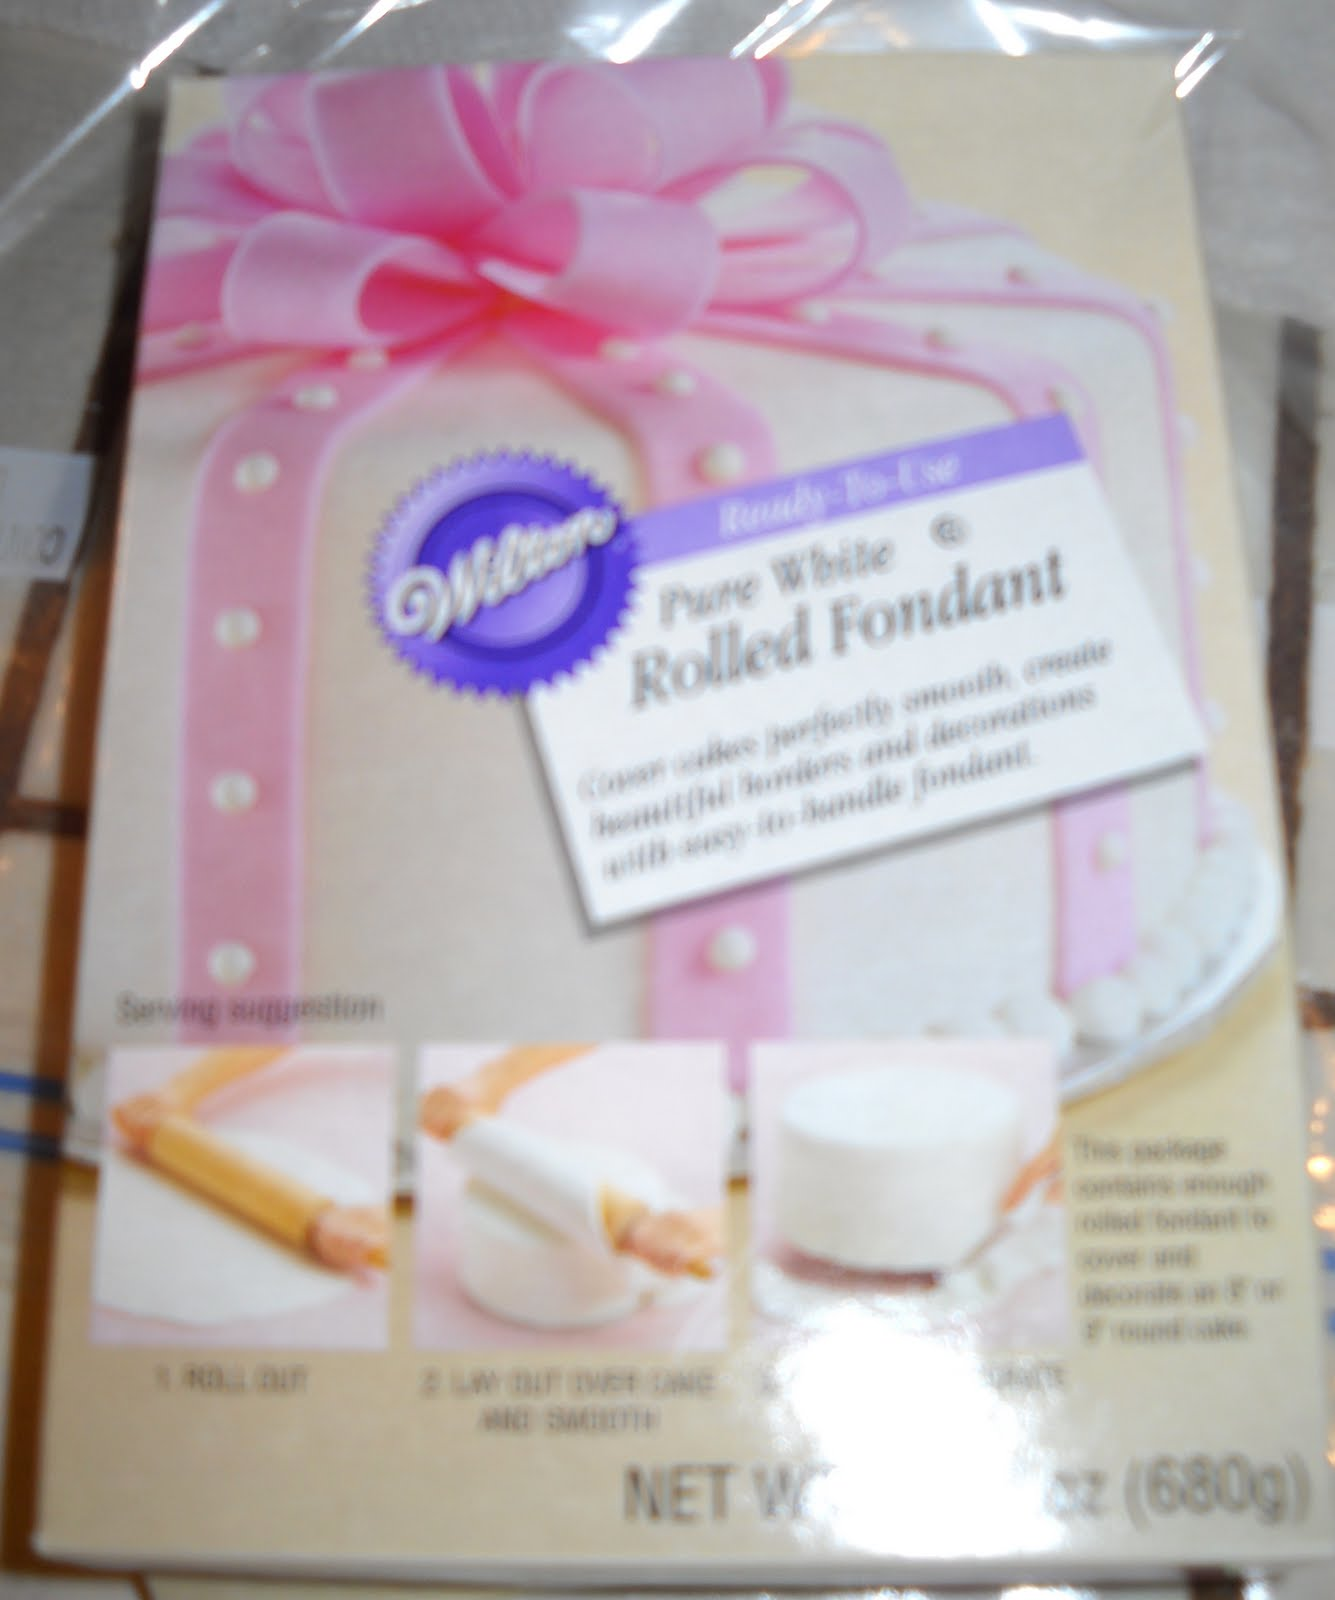 where to buy ready made fondant